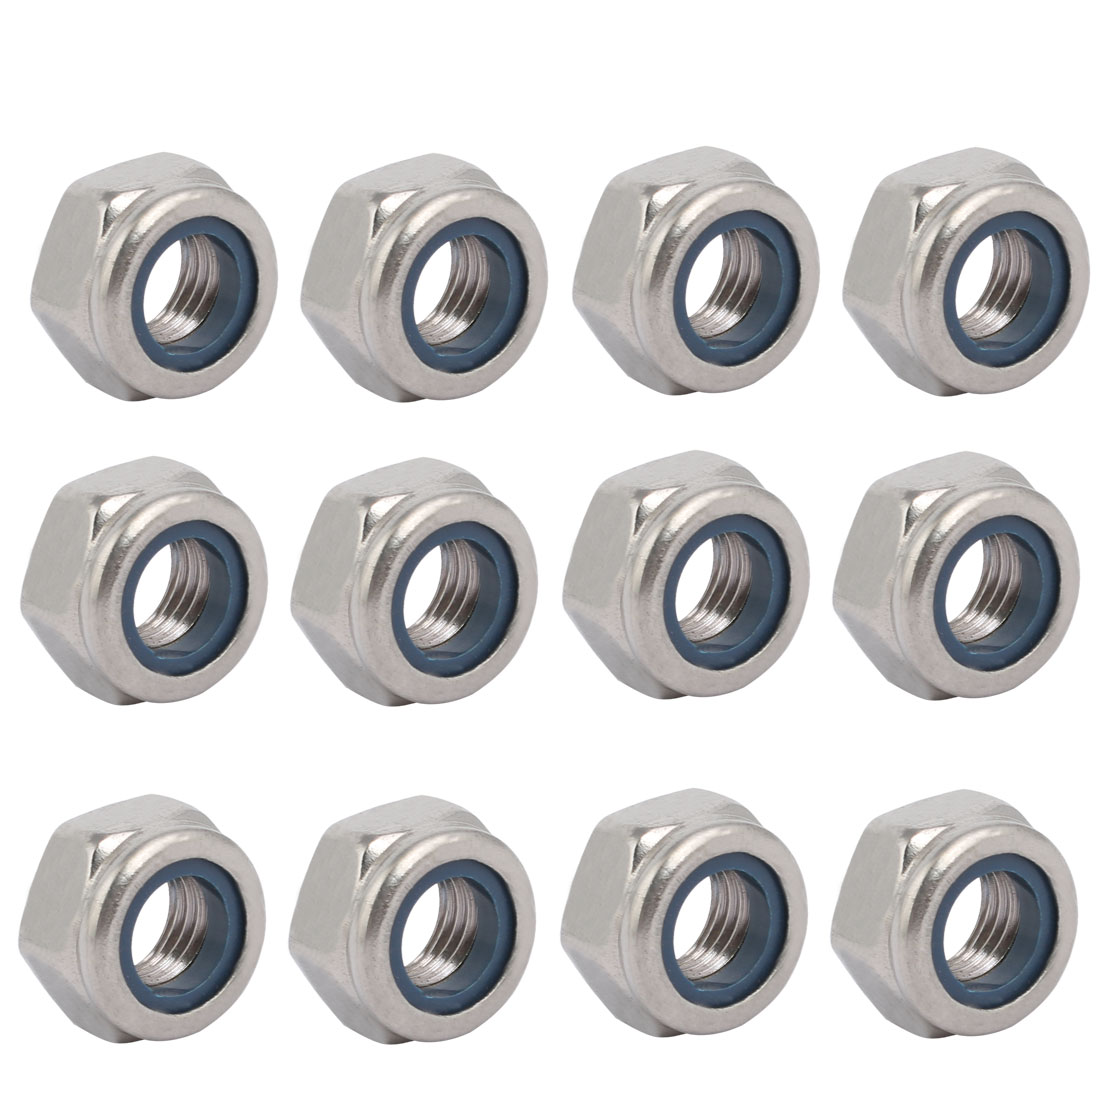 12pcs M10 x 1.25mm Pitch Metric Fine Thread 304 Stainless Steel Hex Lock Nuts